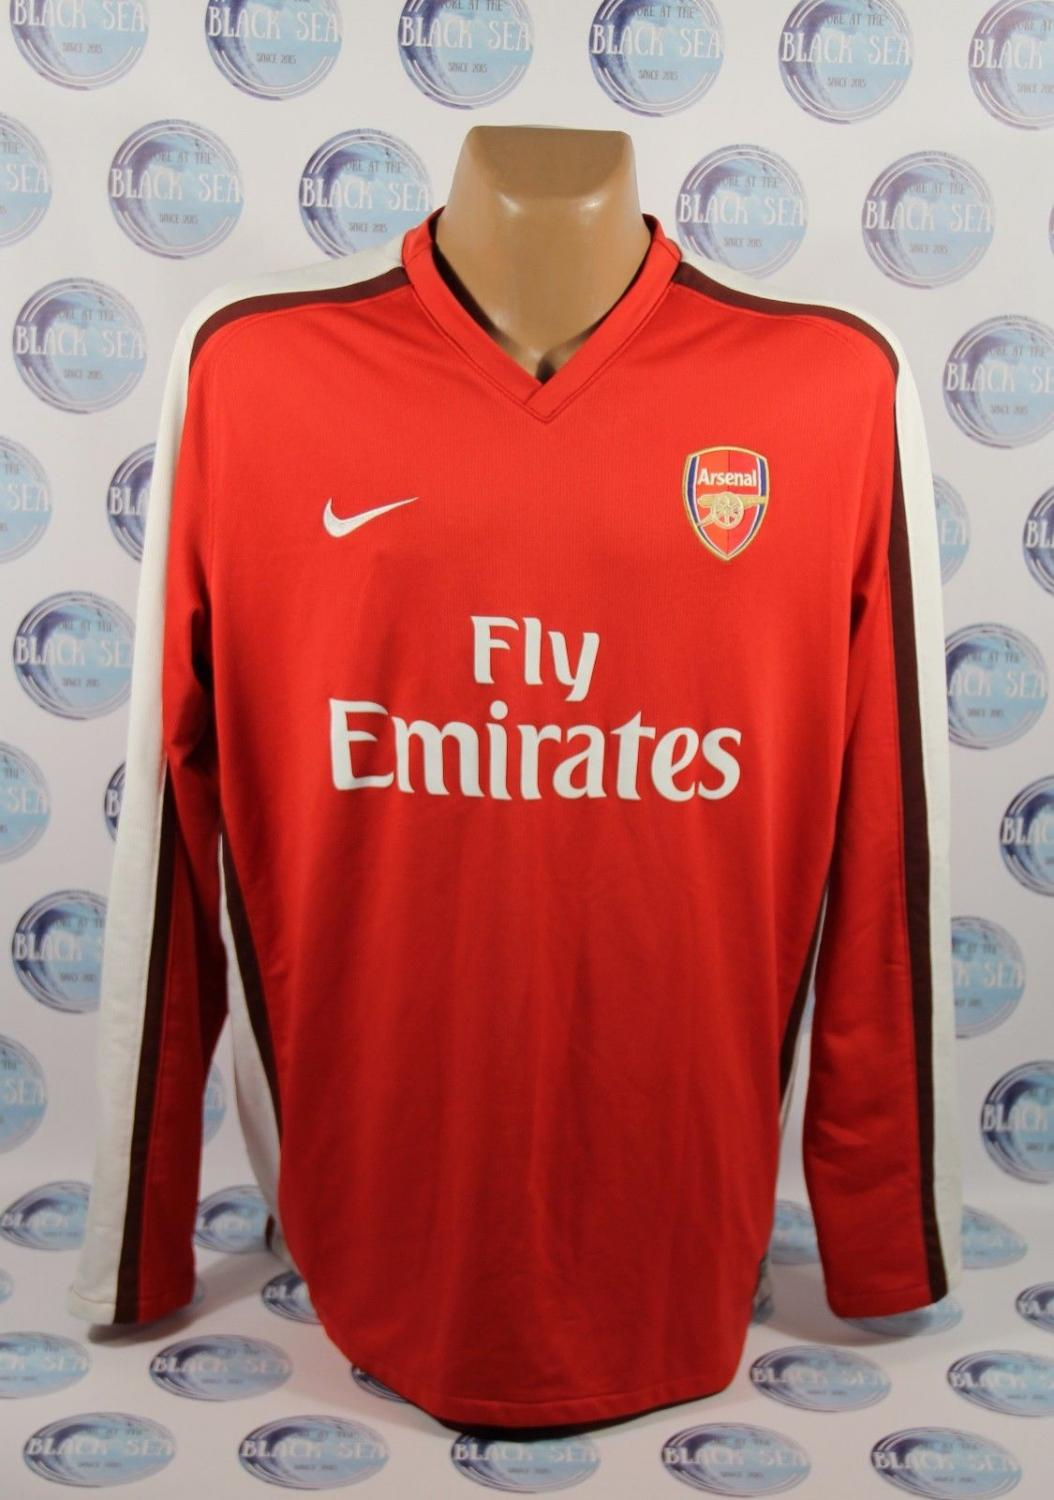 f007f7f8a5c1e Arsenal Home football shirt 2008 - 2010. Sponsored by Emirates